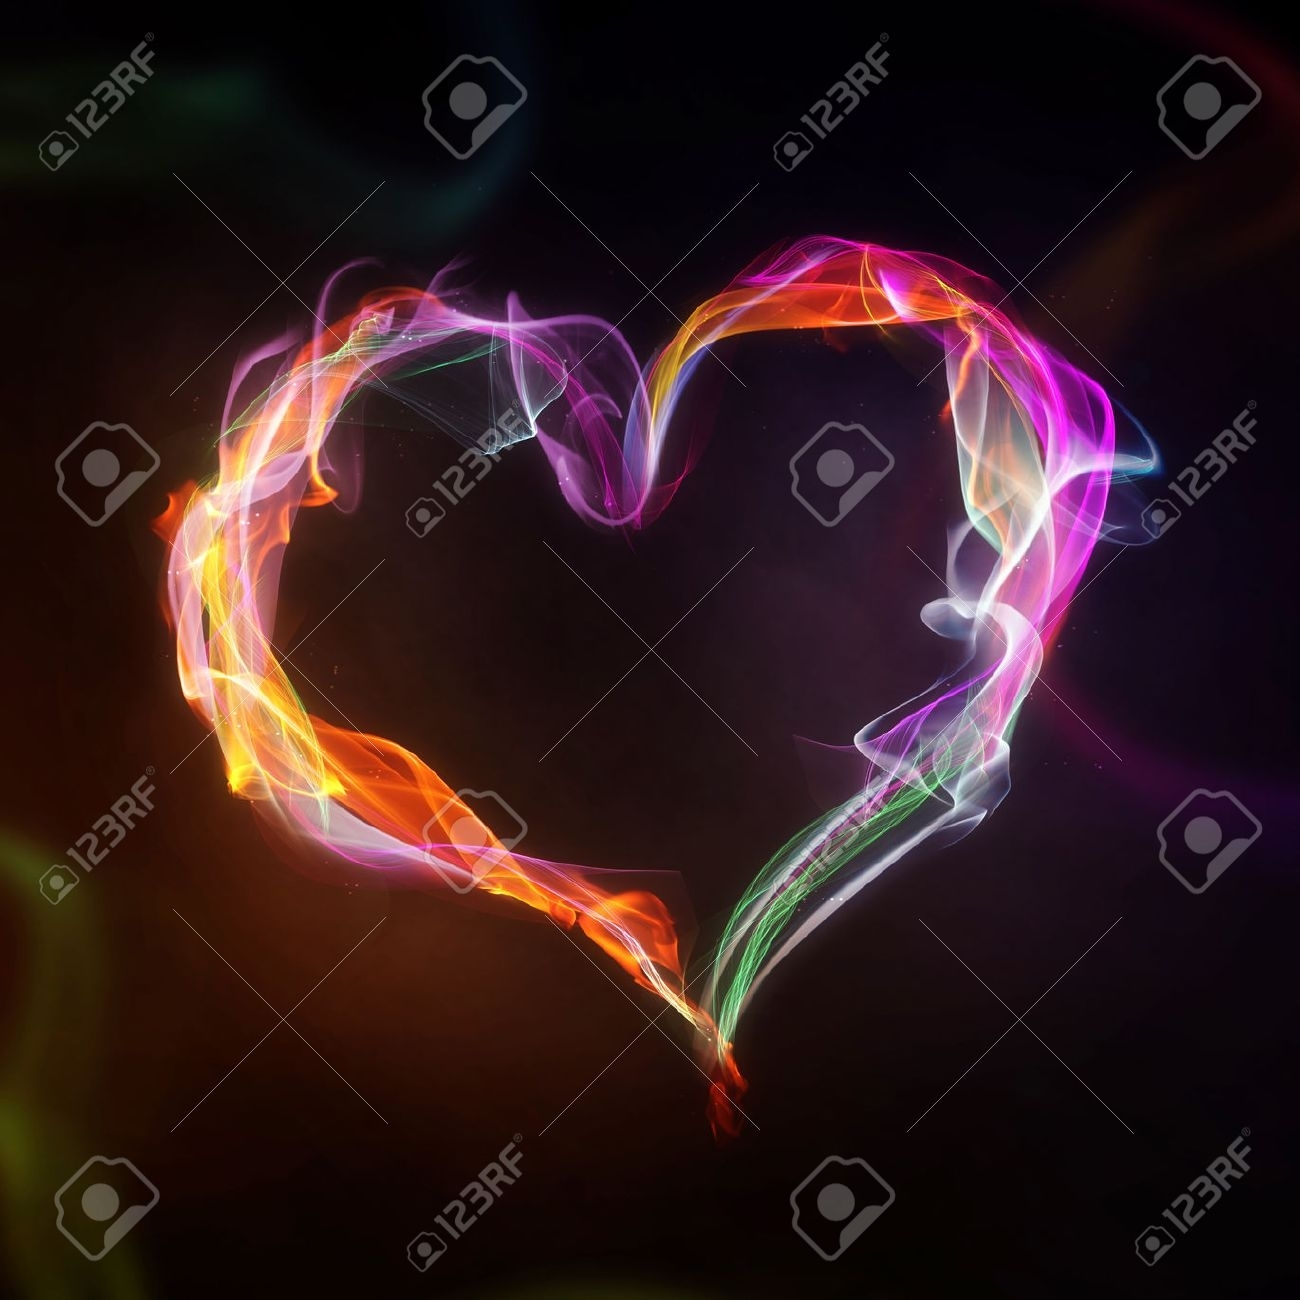 smoke and flame heart on a black background stock photo, picture and